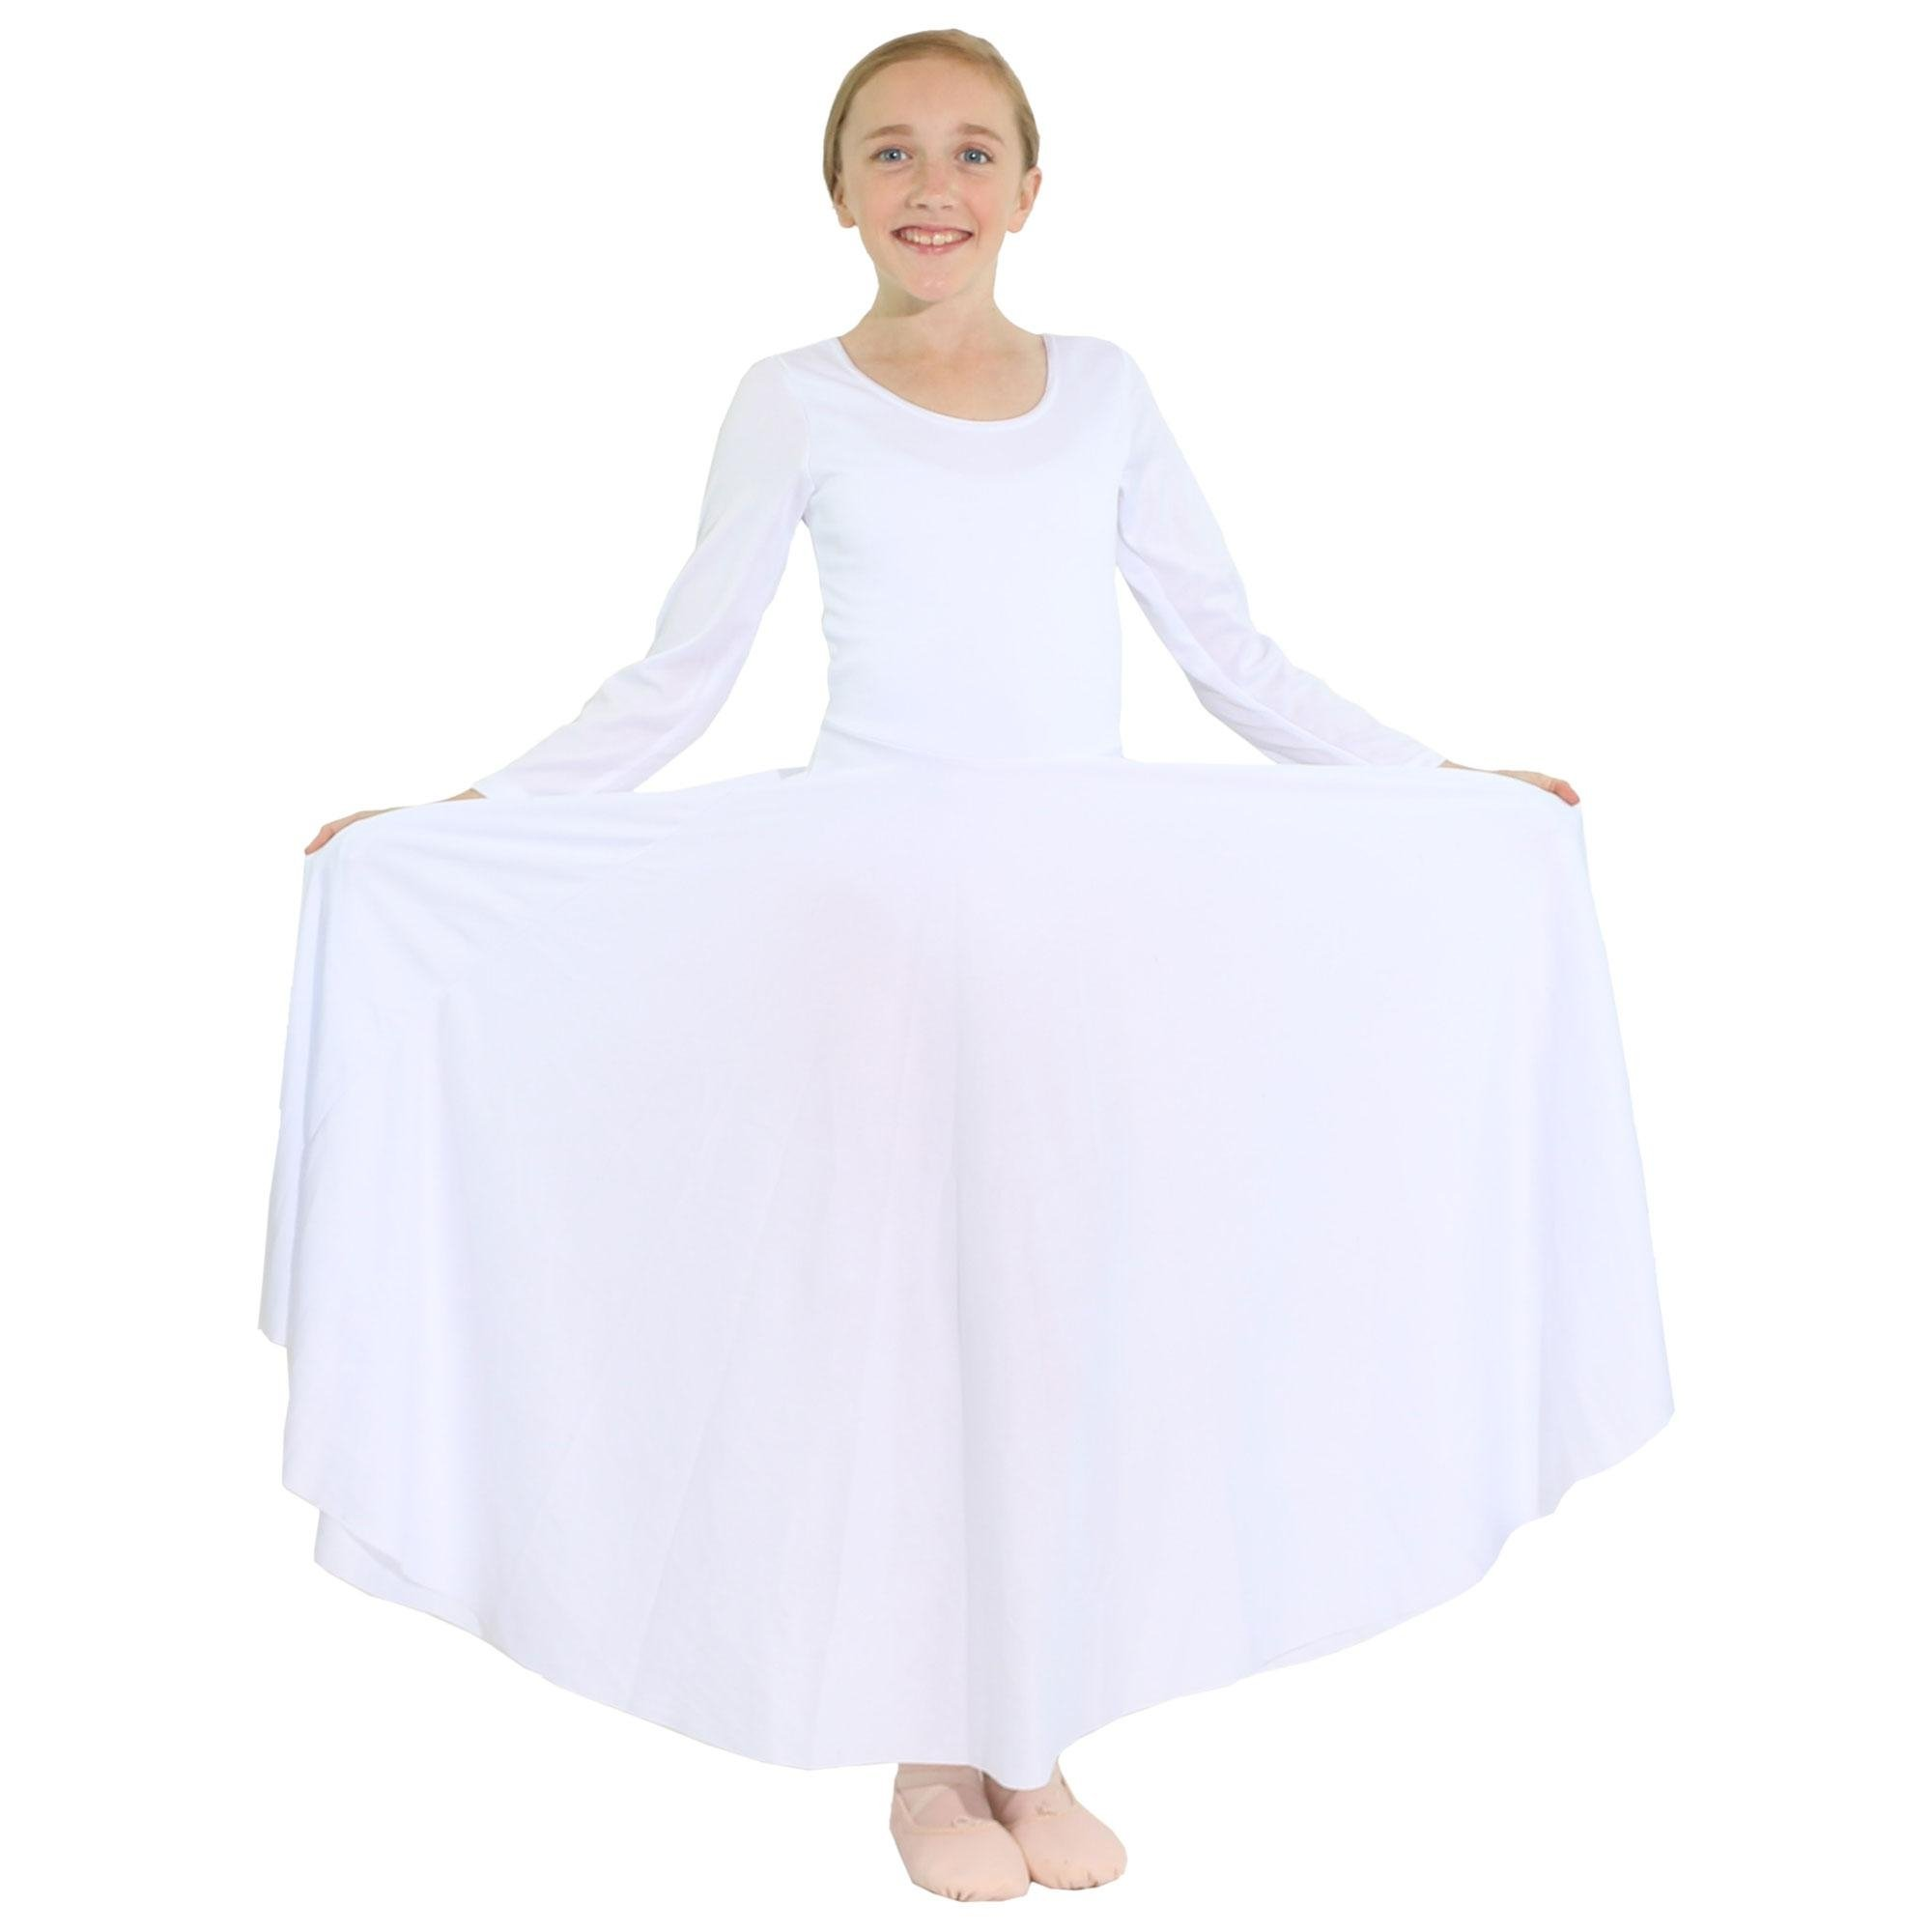 Danzcue Girls Praise Loose Fit Full Length Long Sleeve Dance Dress, White, 8-10 by Danzcue